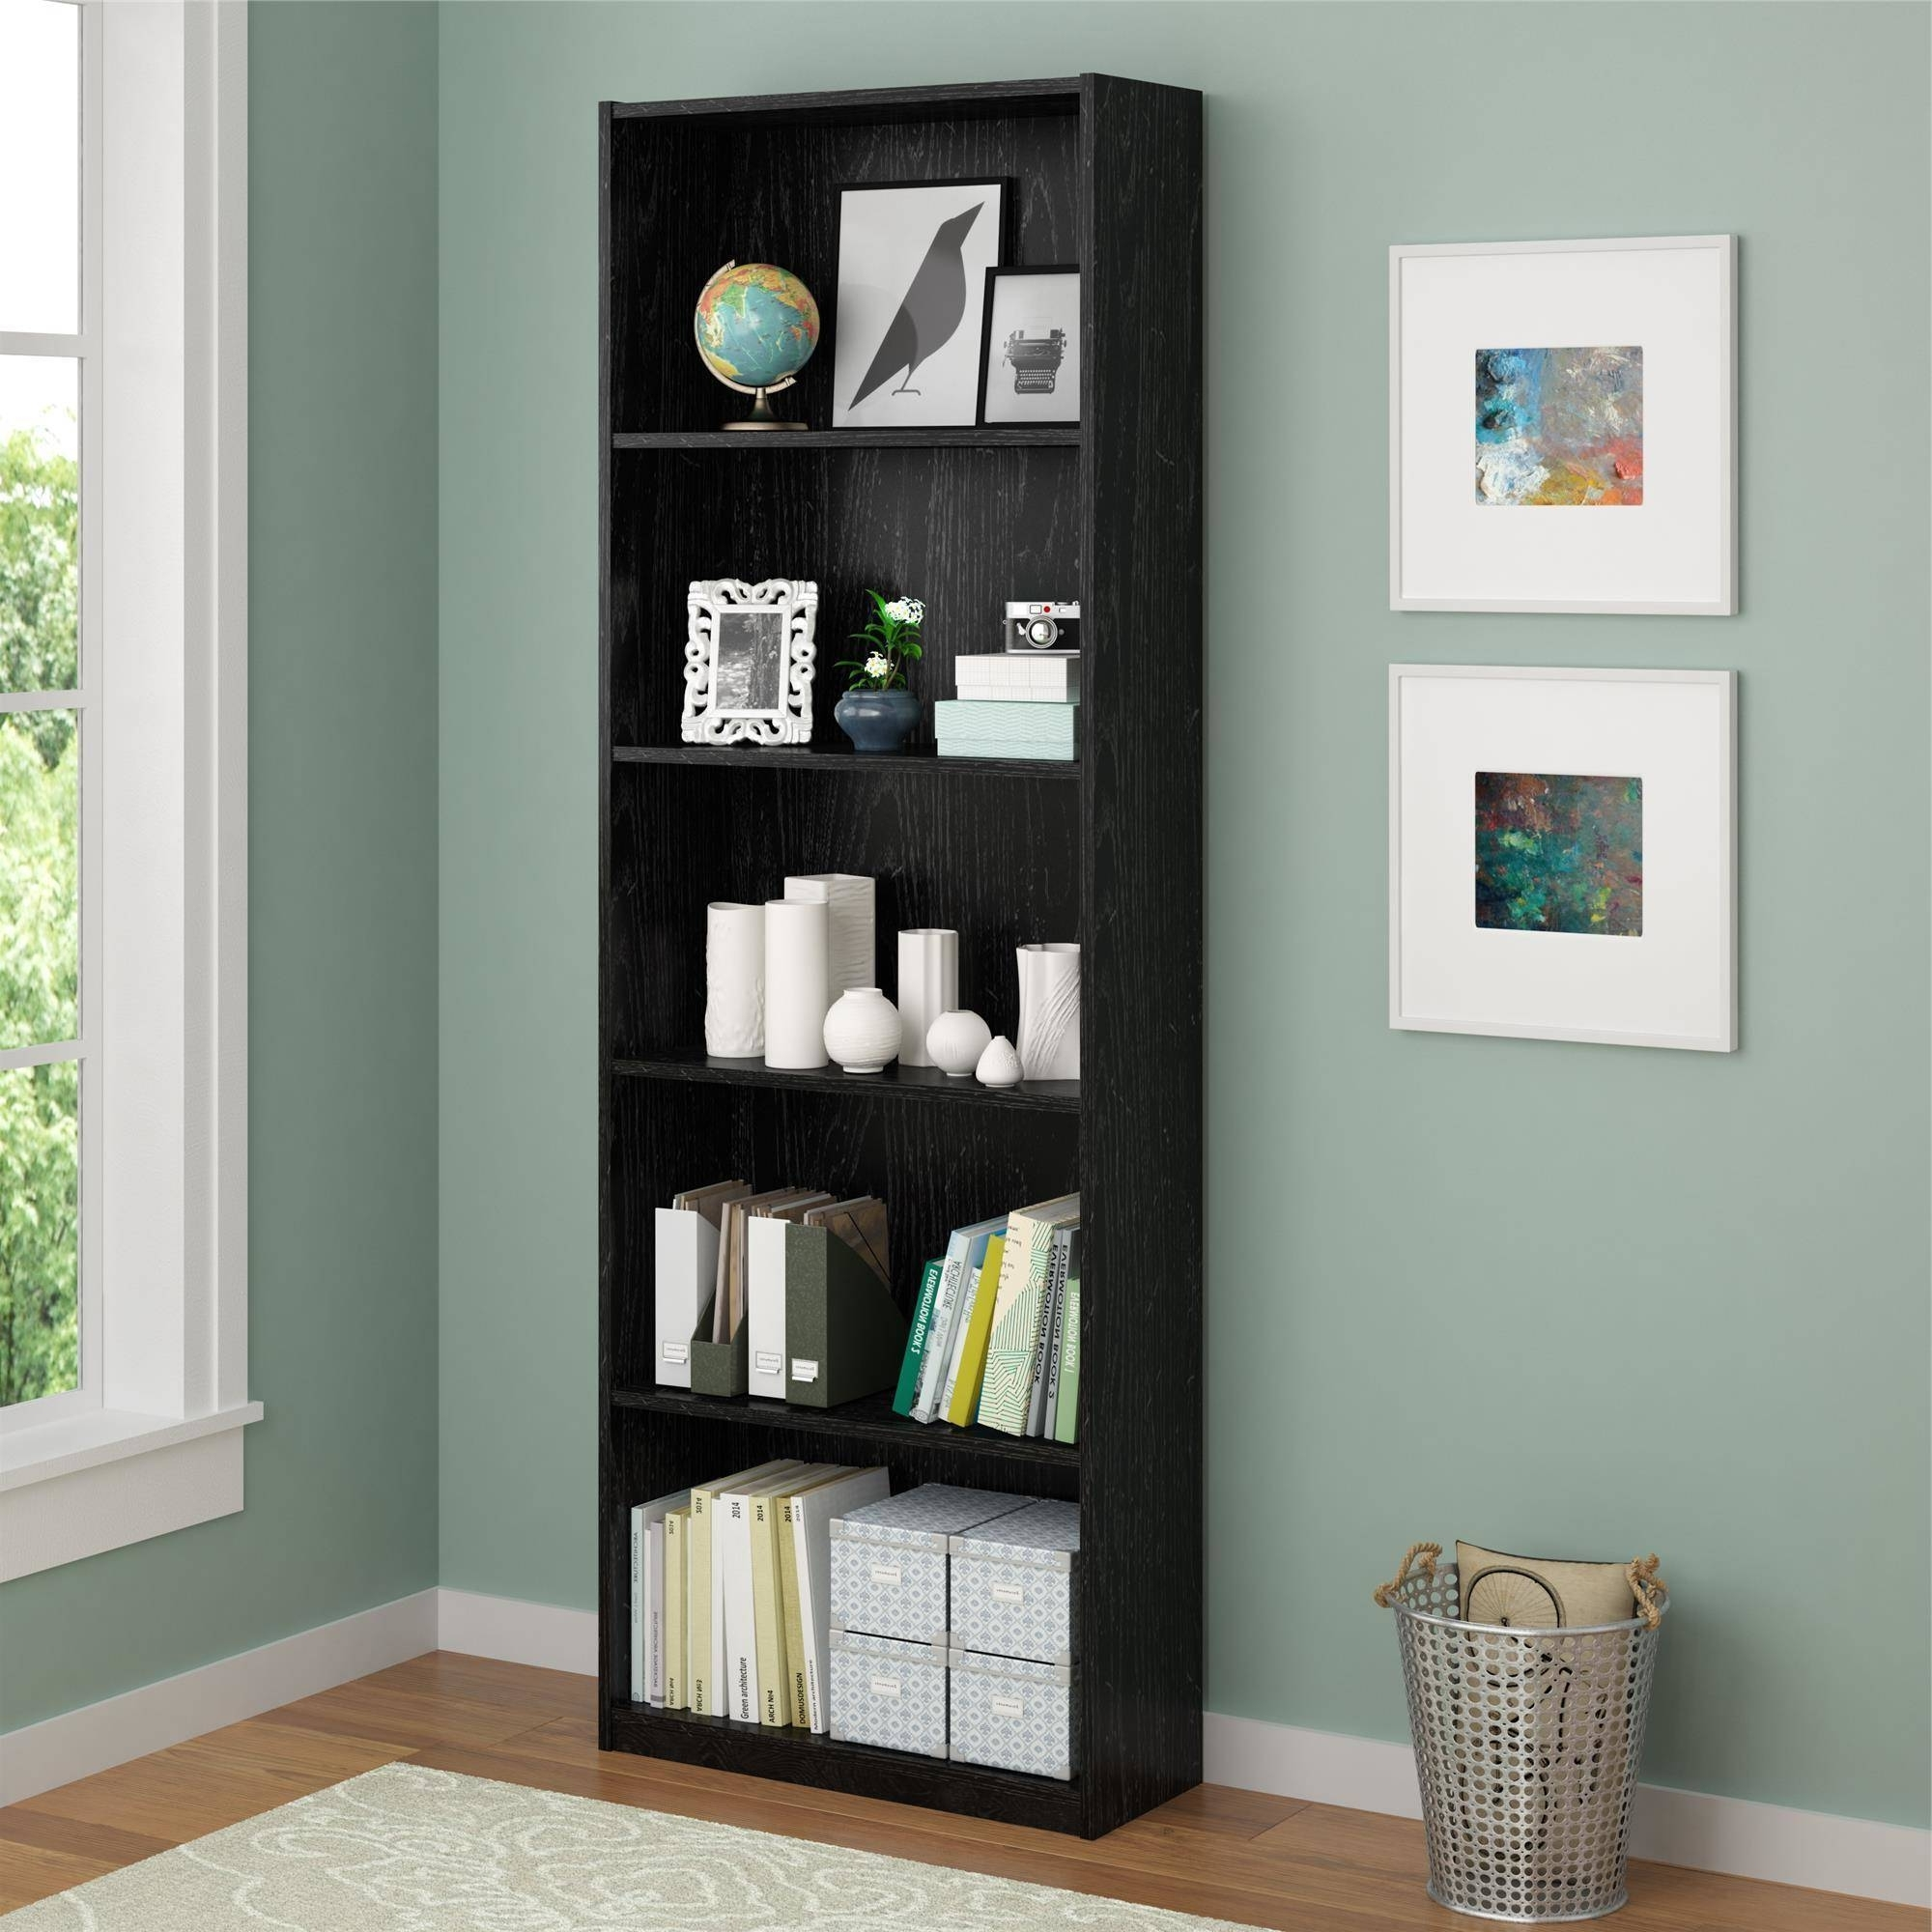 White Walmart Bookcases Within Trendy Ameriwood 5 Shelf Bookcase, Multiple Colors – Walmart (View 14 of 15)